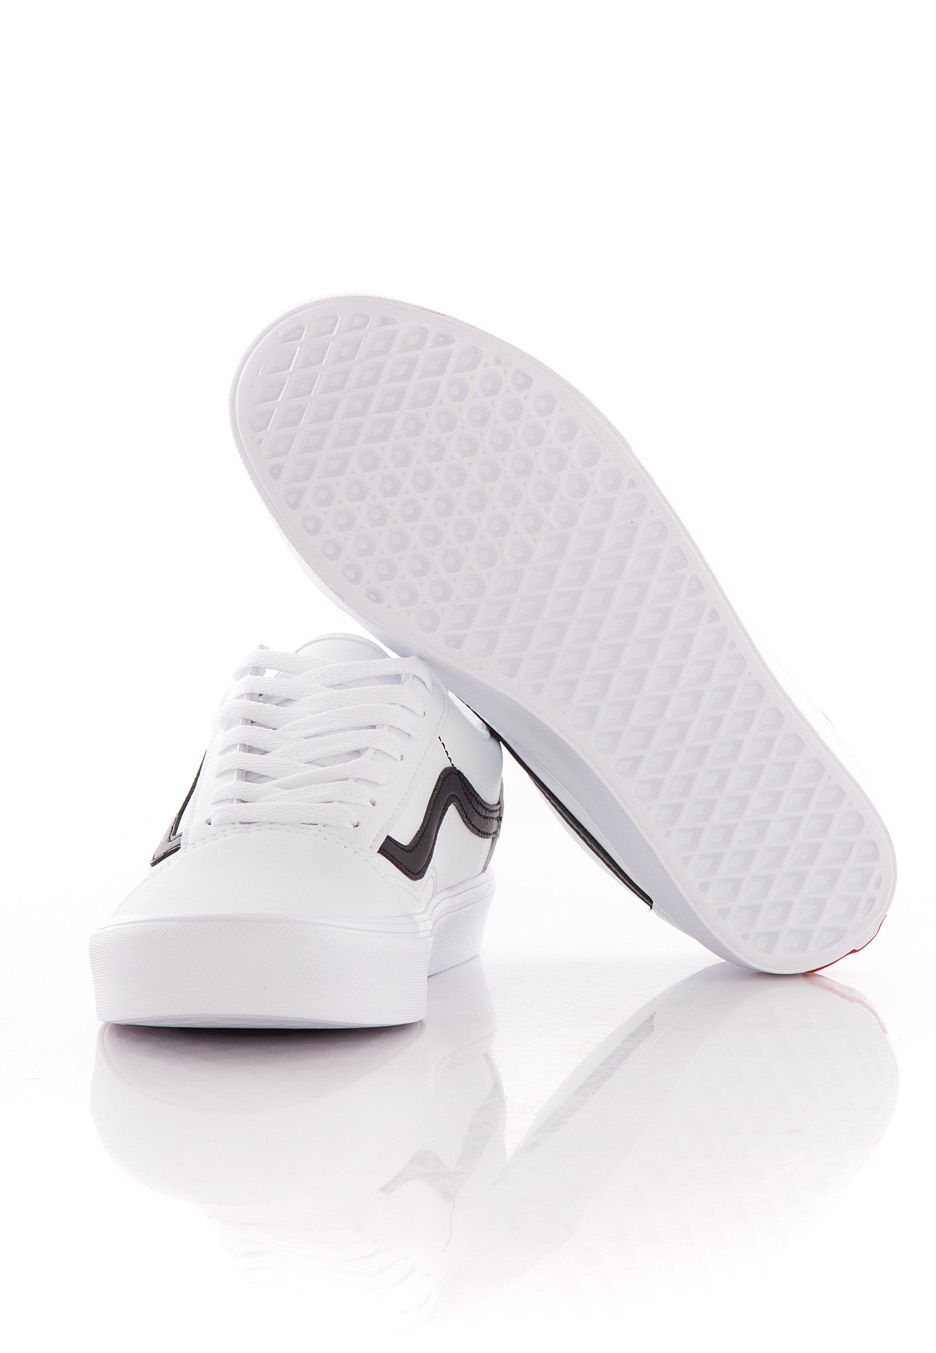 bf7bb75254 ... Vans - Old Skool Lite Classic Tumble True White Black - Shoes ...